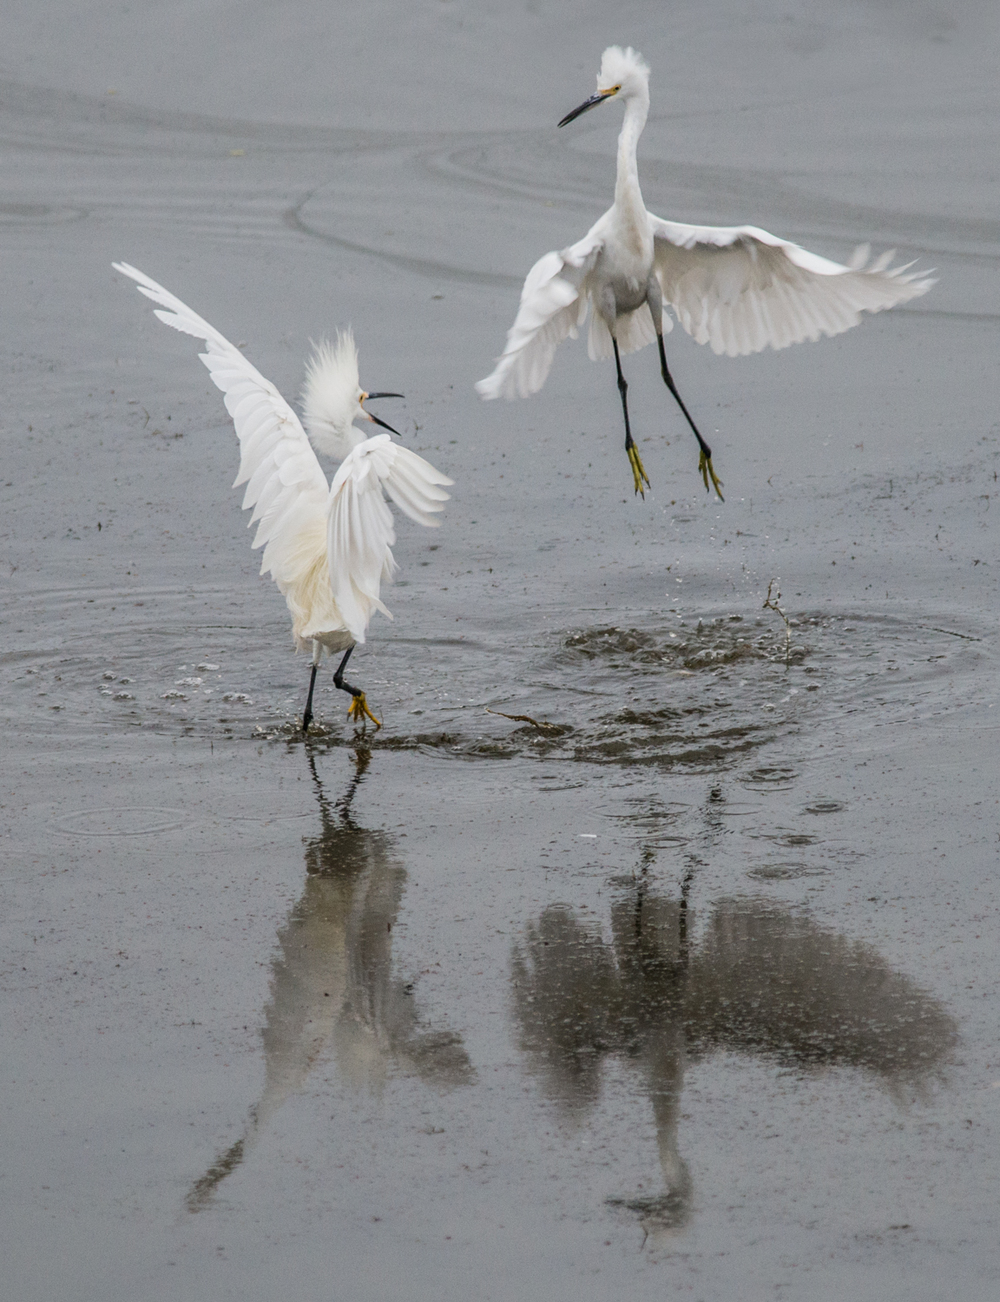 Snowy Egret (Egretta thula)   Setting: 500mm, f/4.8, 1/500s, ISO1400, VR on